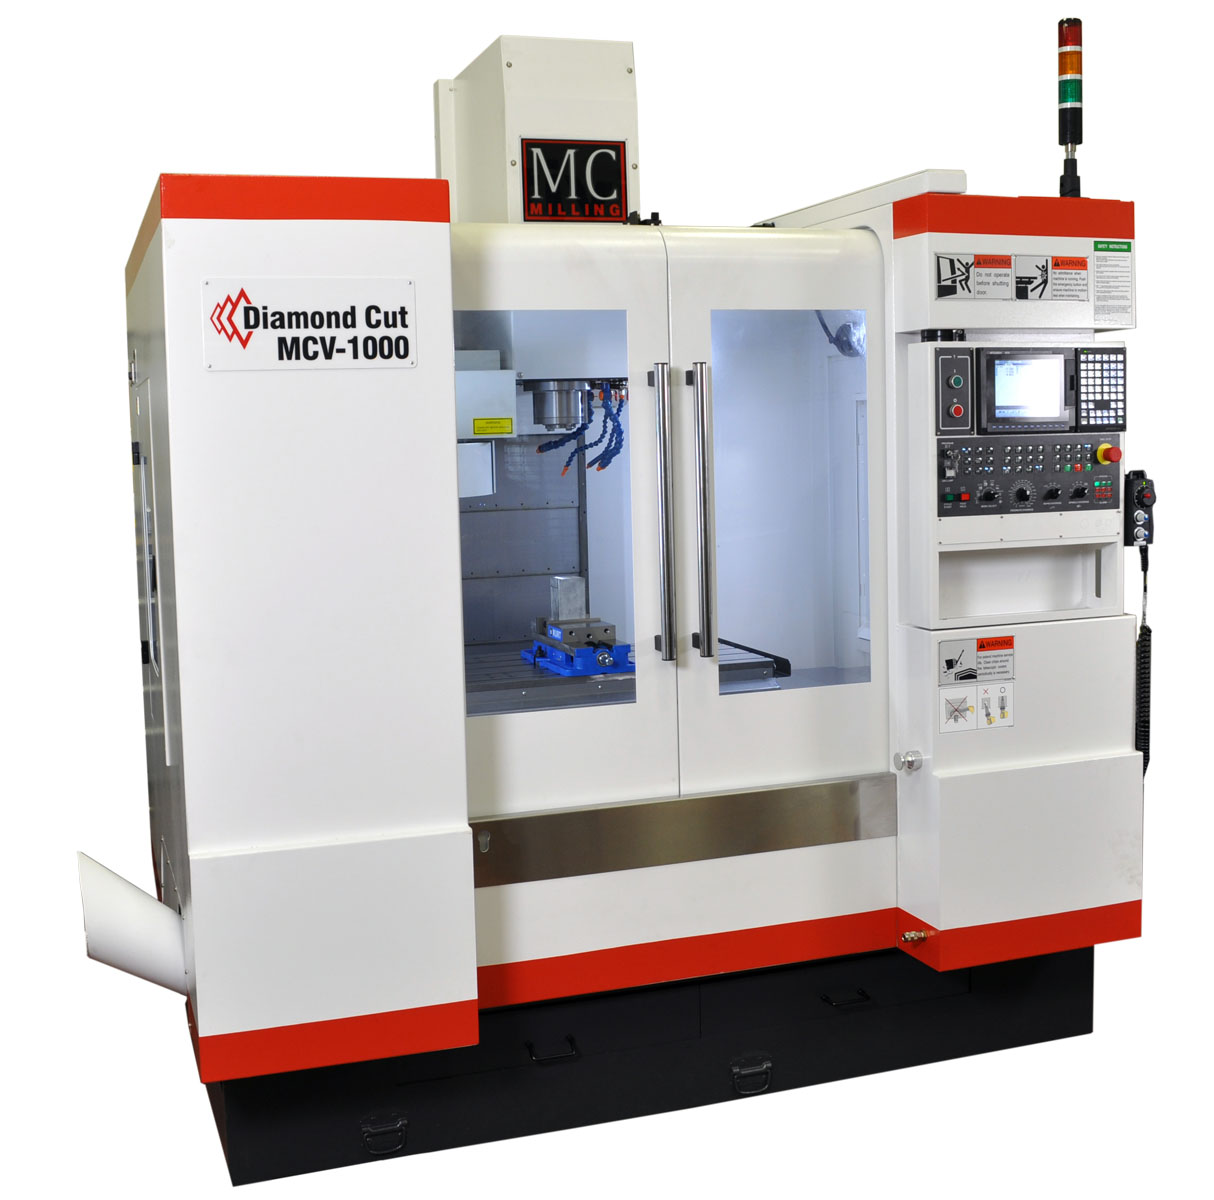 The MCV1000 vertical machining center from Mitsubishi is ideal for general purpose milling.(Click on photo to enlarge it)